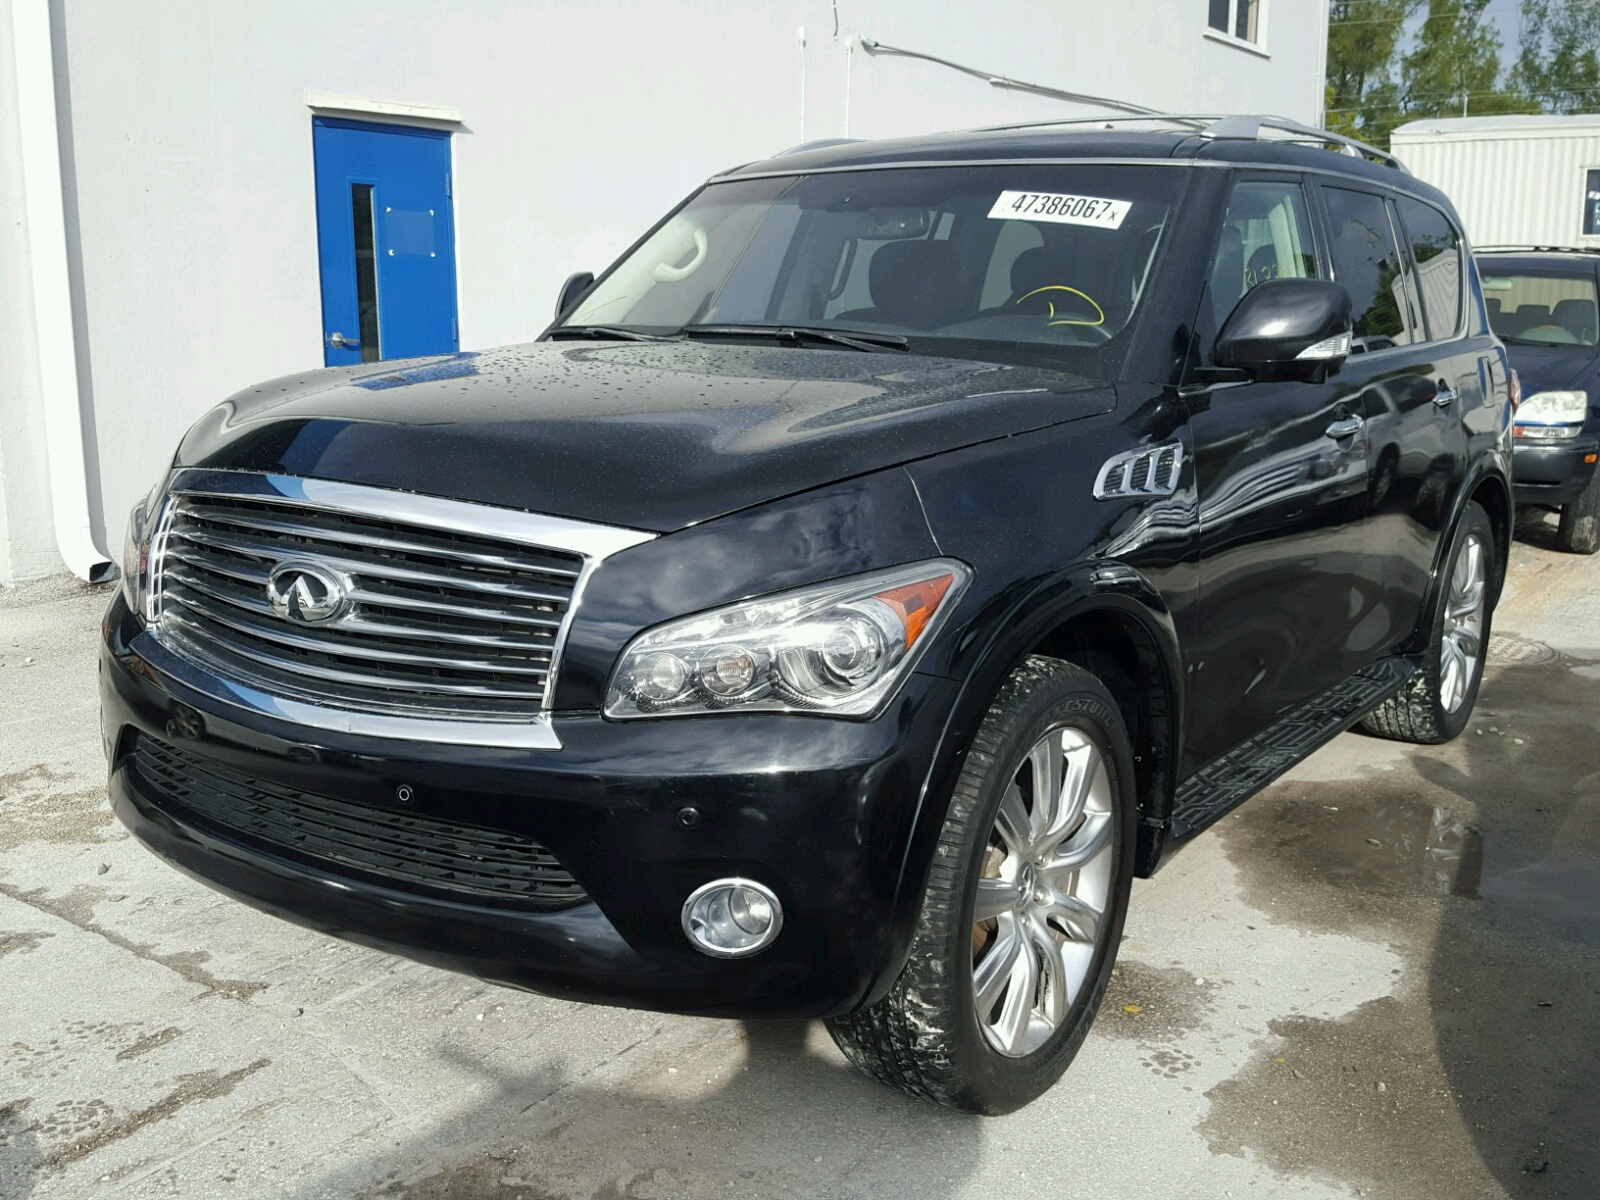 Infiniti San Antonio >> 2014 Infiniti QX80 for sale at Copart Miami, FL Lot# 47386067